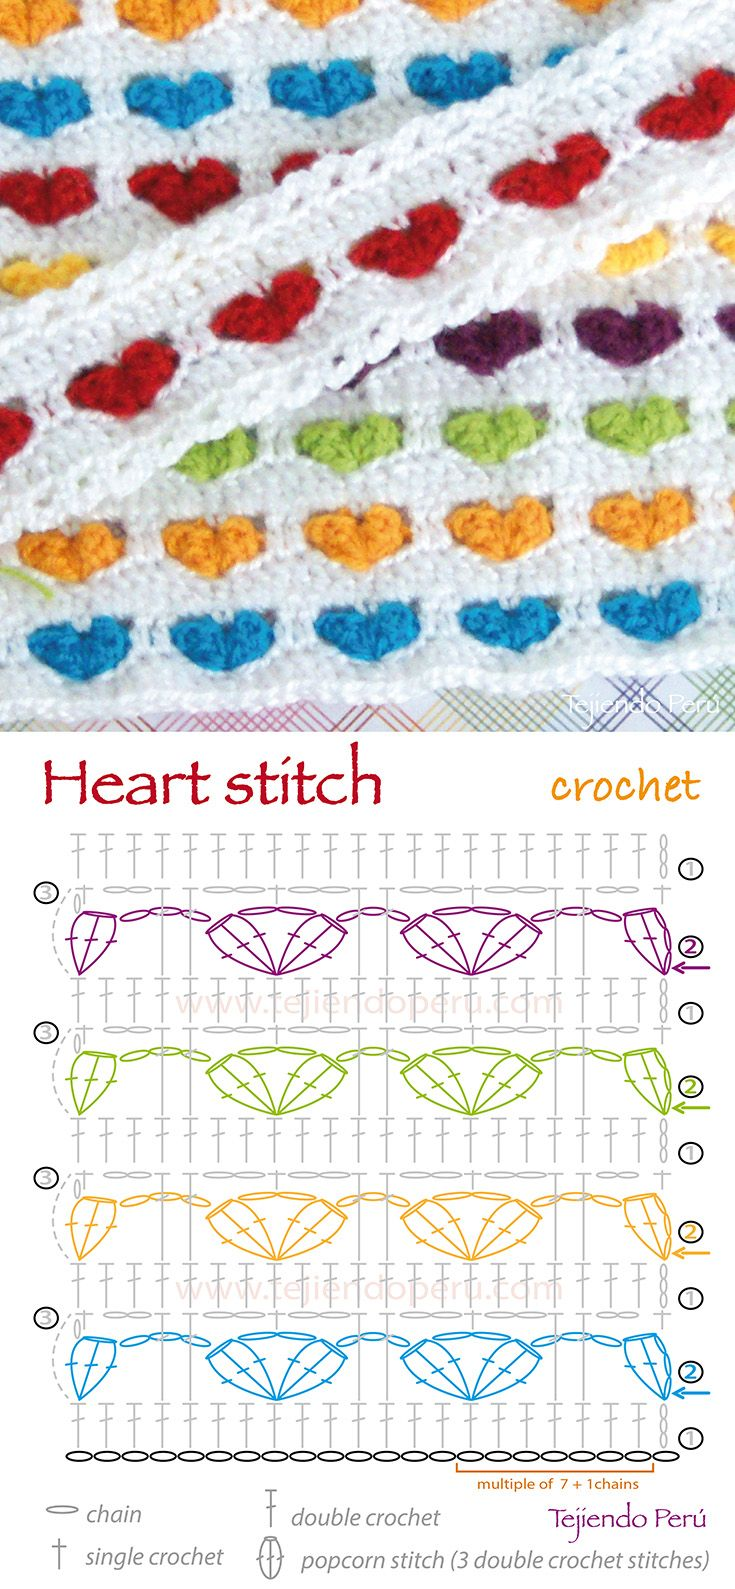 #Crochet heart #stitch diagram (pattern or chart)! #crochetpattern